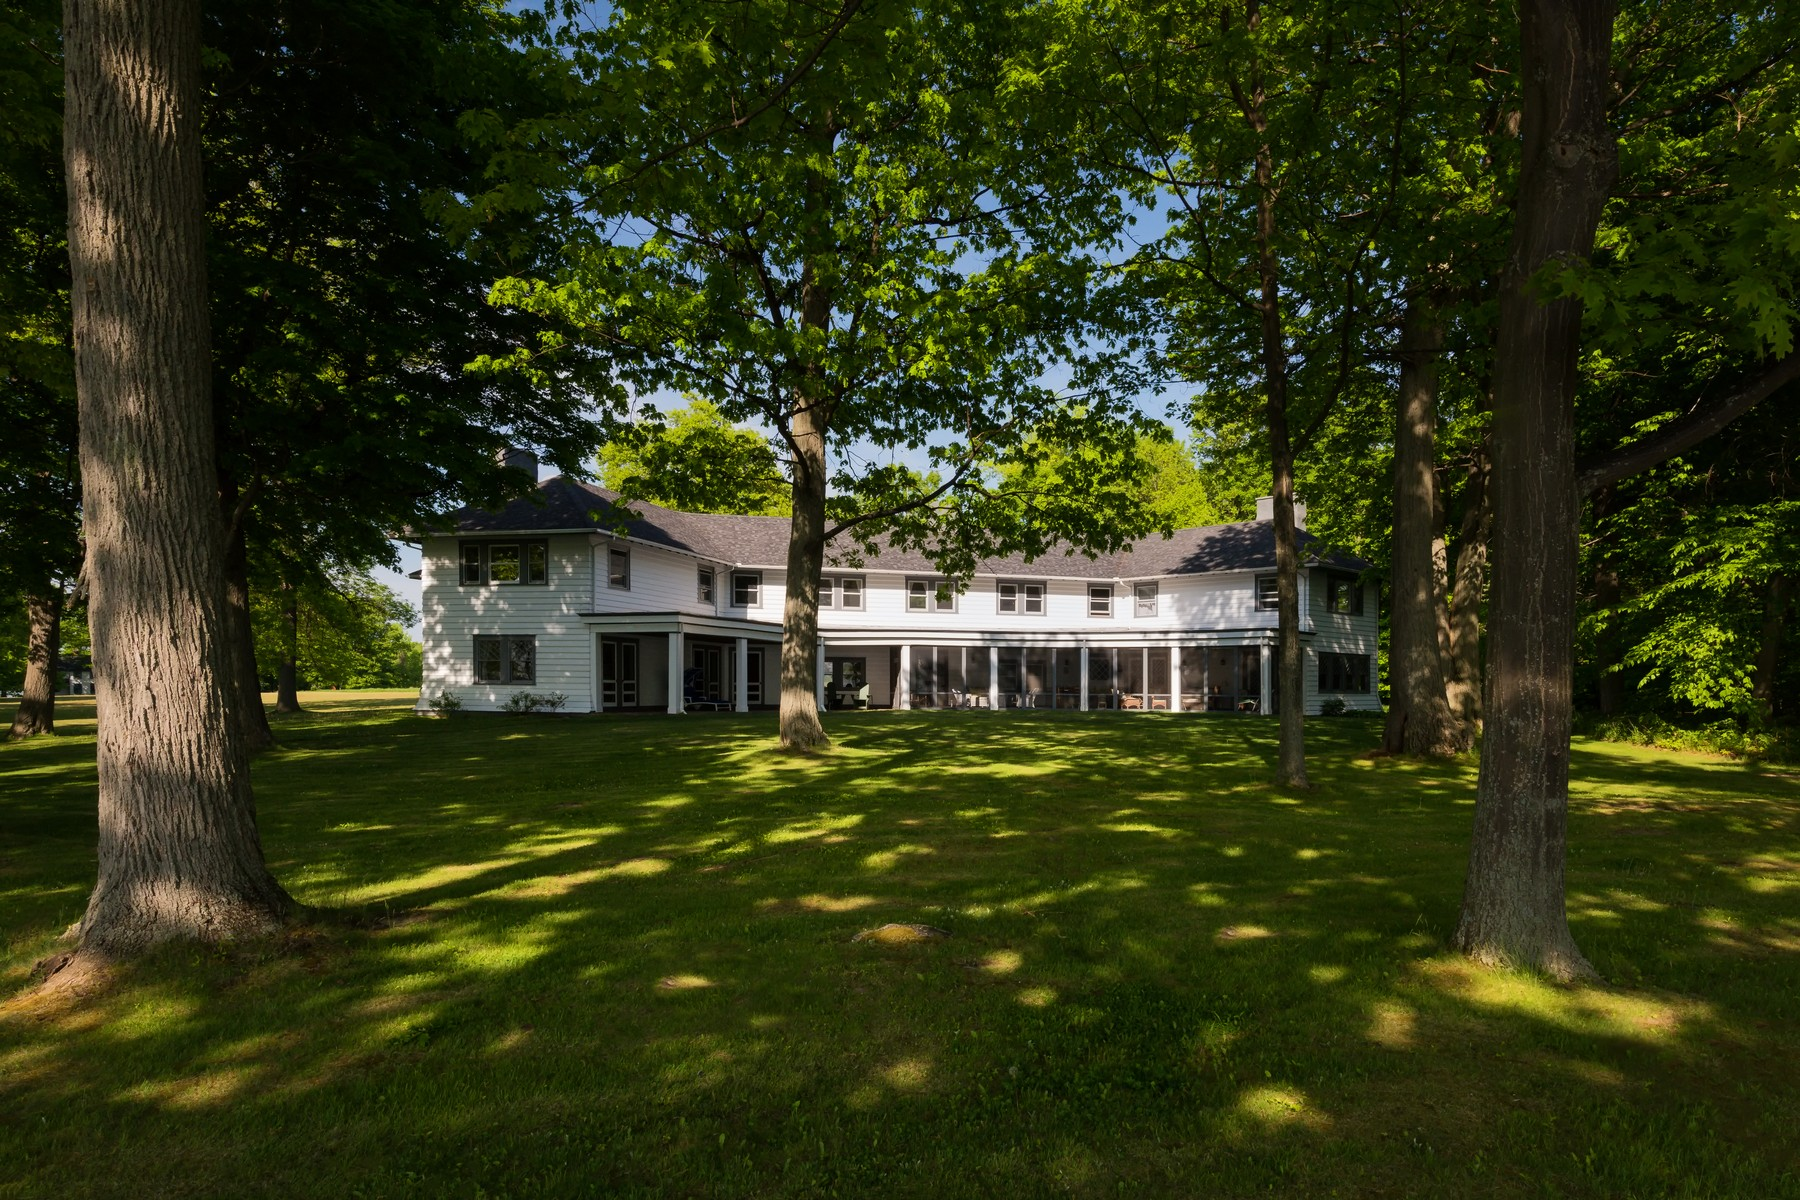 Single Family Homes for Sale at Mid River Estate 10693 Grindstone Clayton, New York 13624 United States